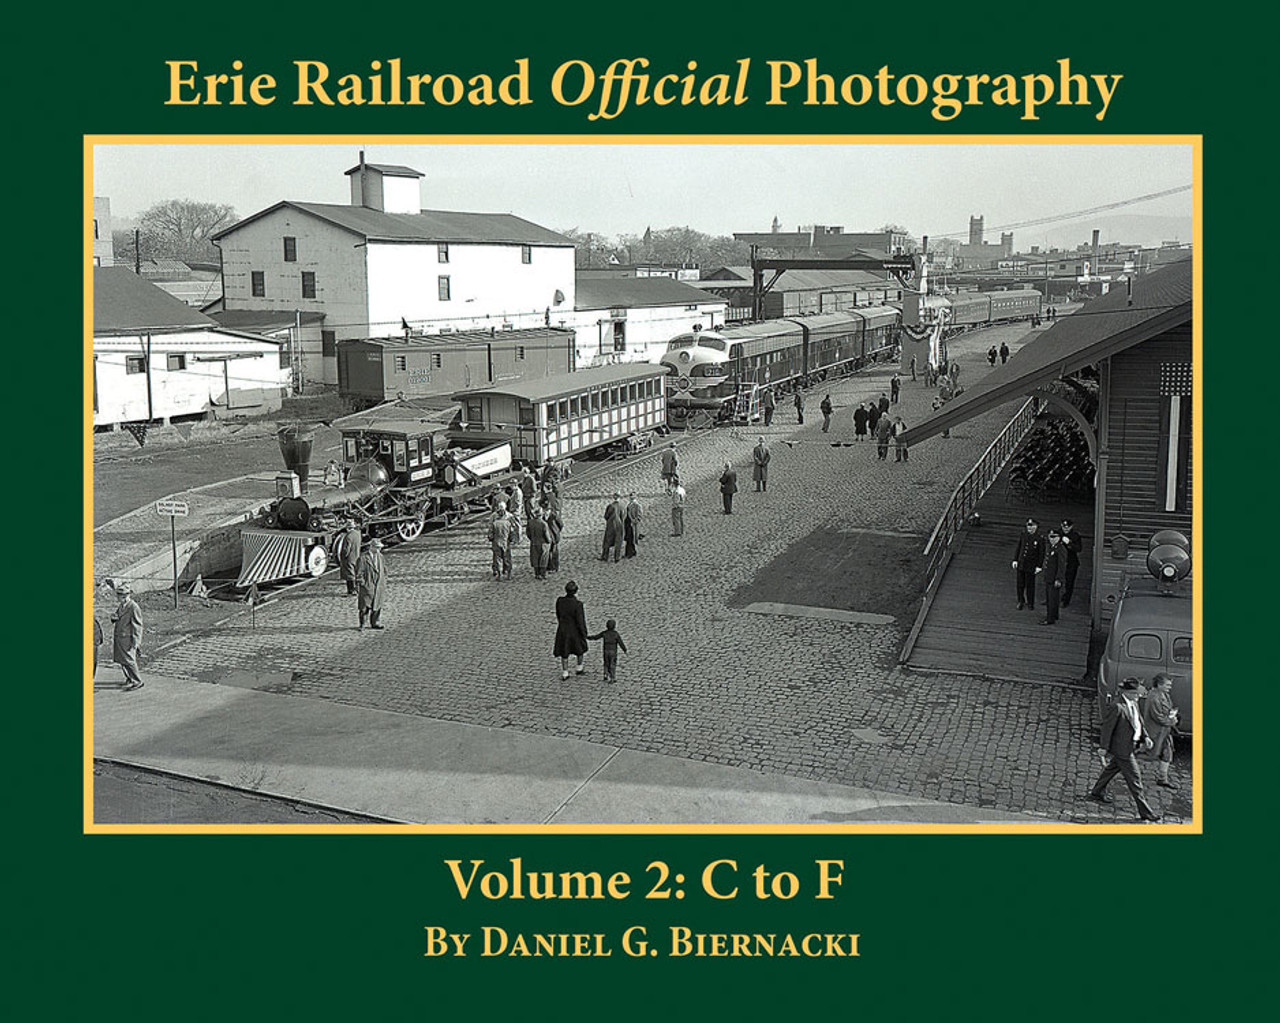 Erie Railroad Official Photography -- Colume 2: C to F, Softcover, 128 Pages, Black & White